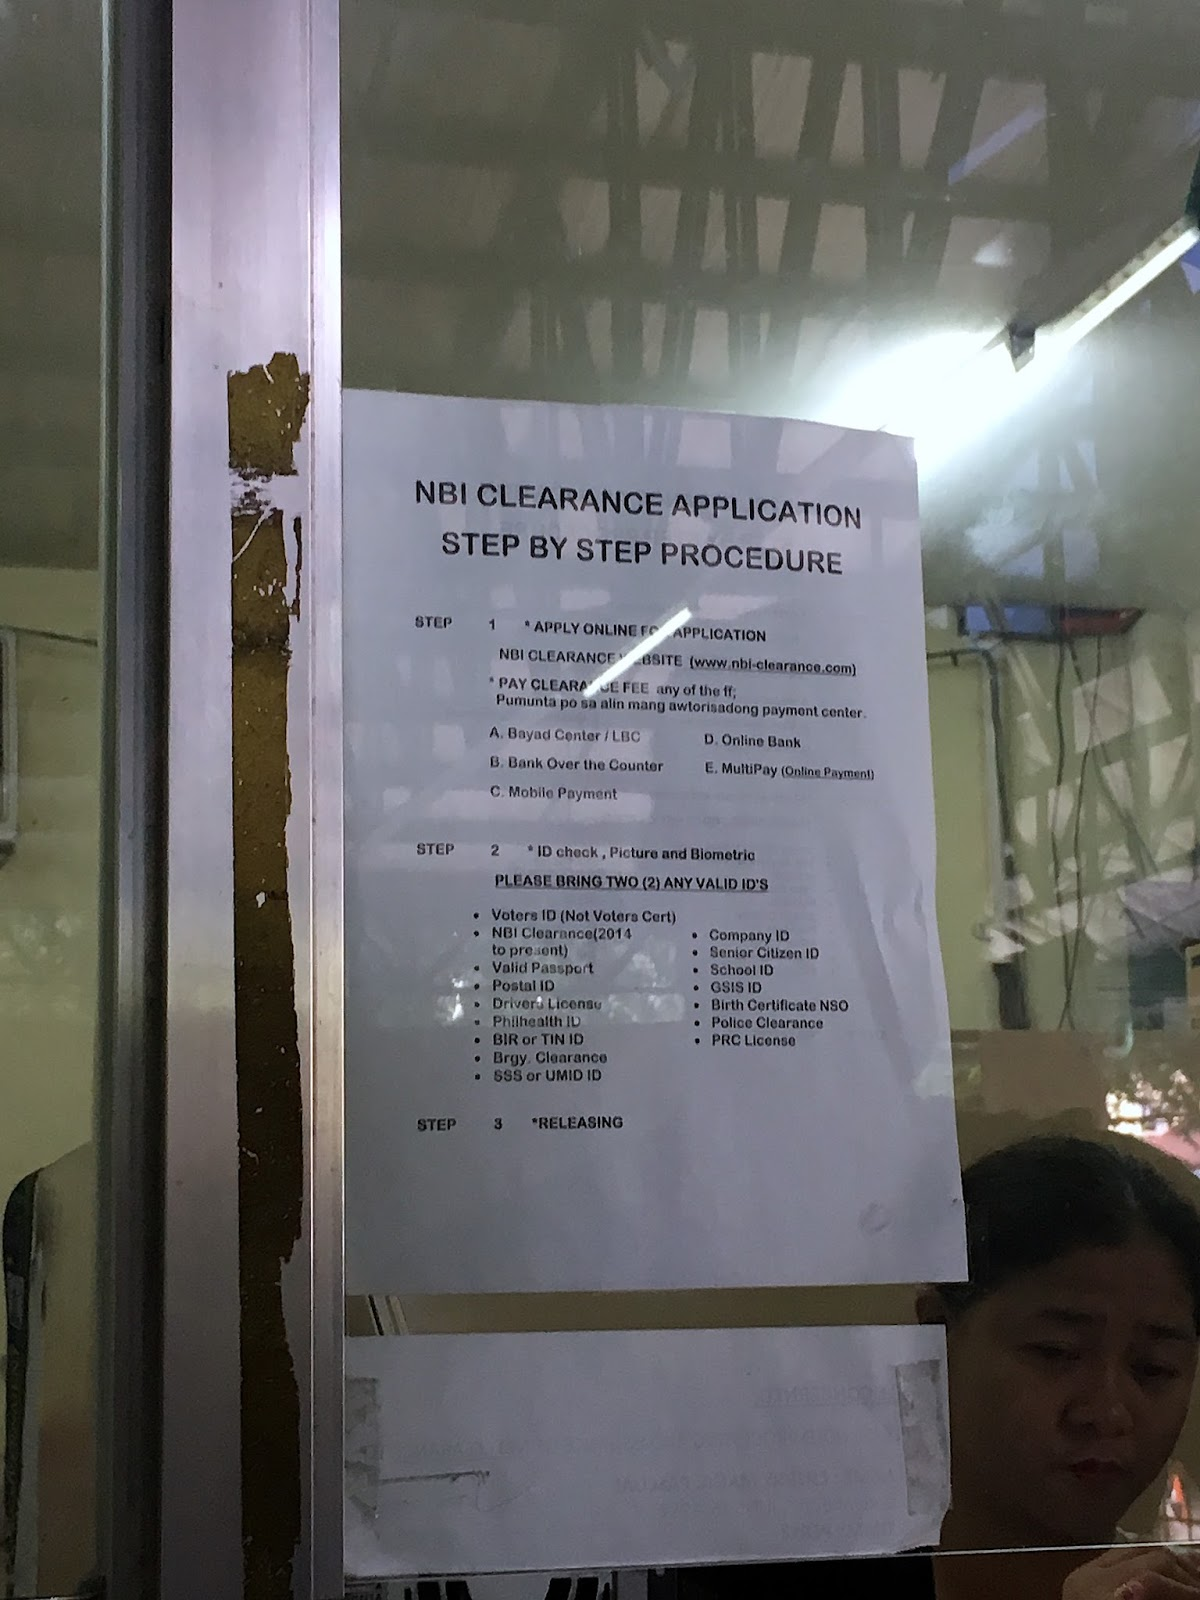 NBI CLEARANCE at the QUEZON CITY HALL: WHAT TO EXPECT | Food In The Bag